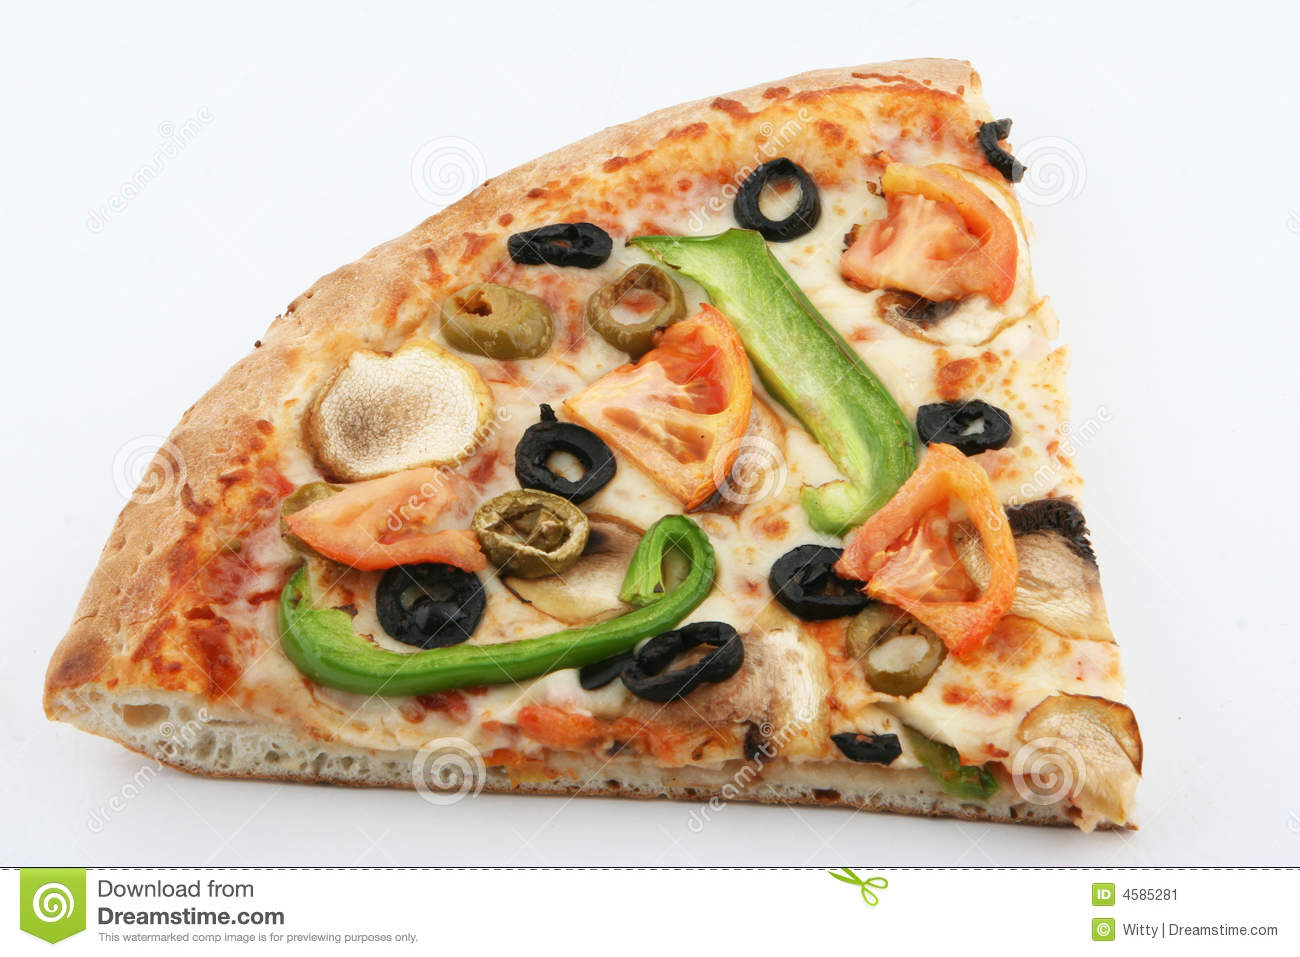 Vegetarian Pizza Slice Stock Image - Image: 4585281